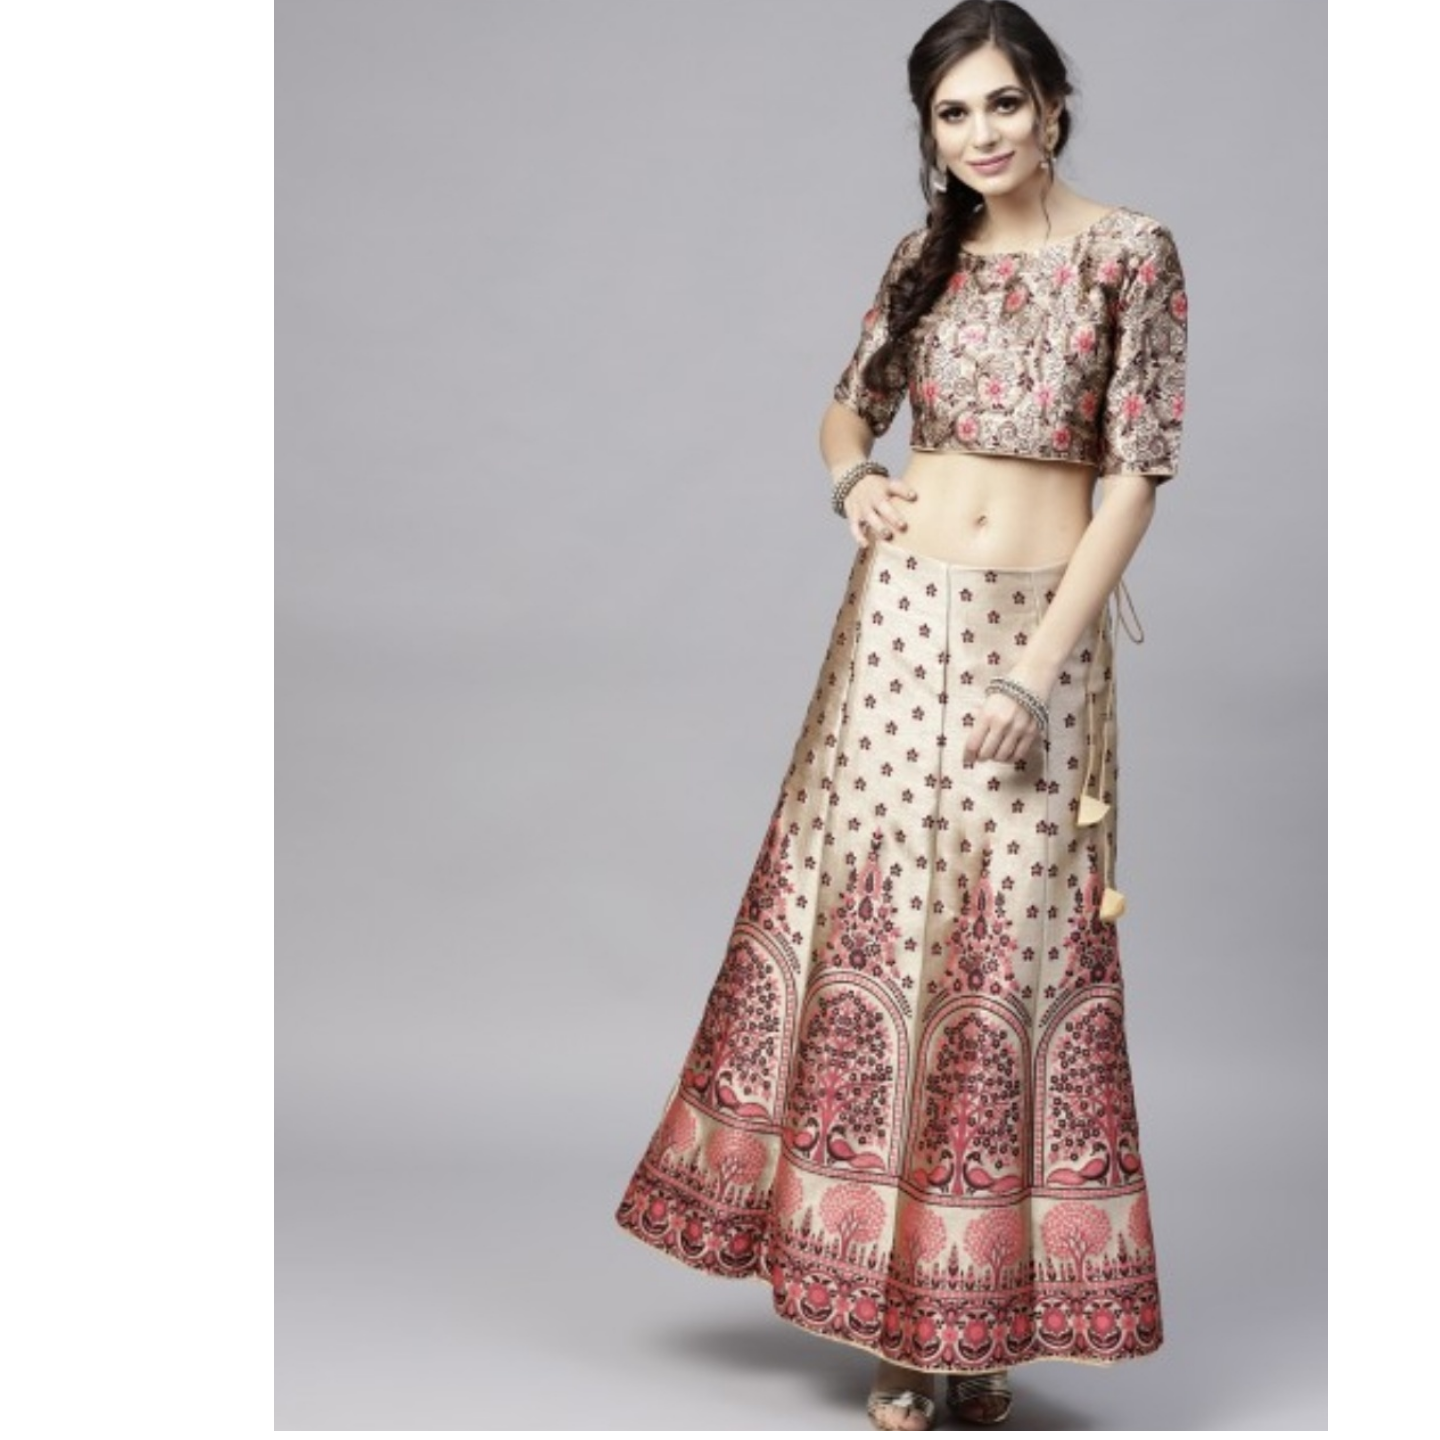 Multicolored Woven Design Lehenga With Choli